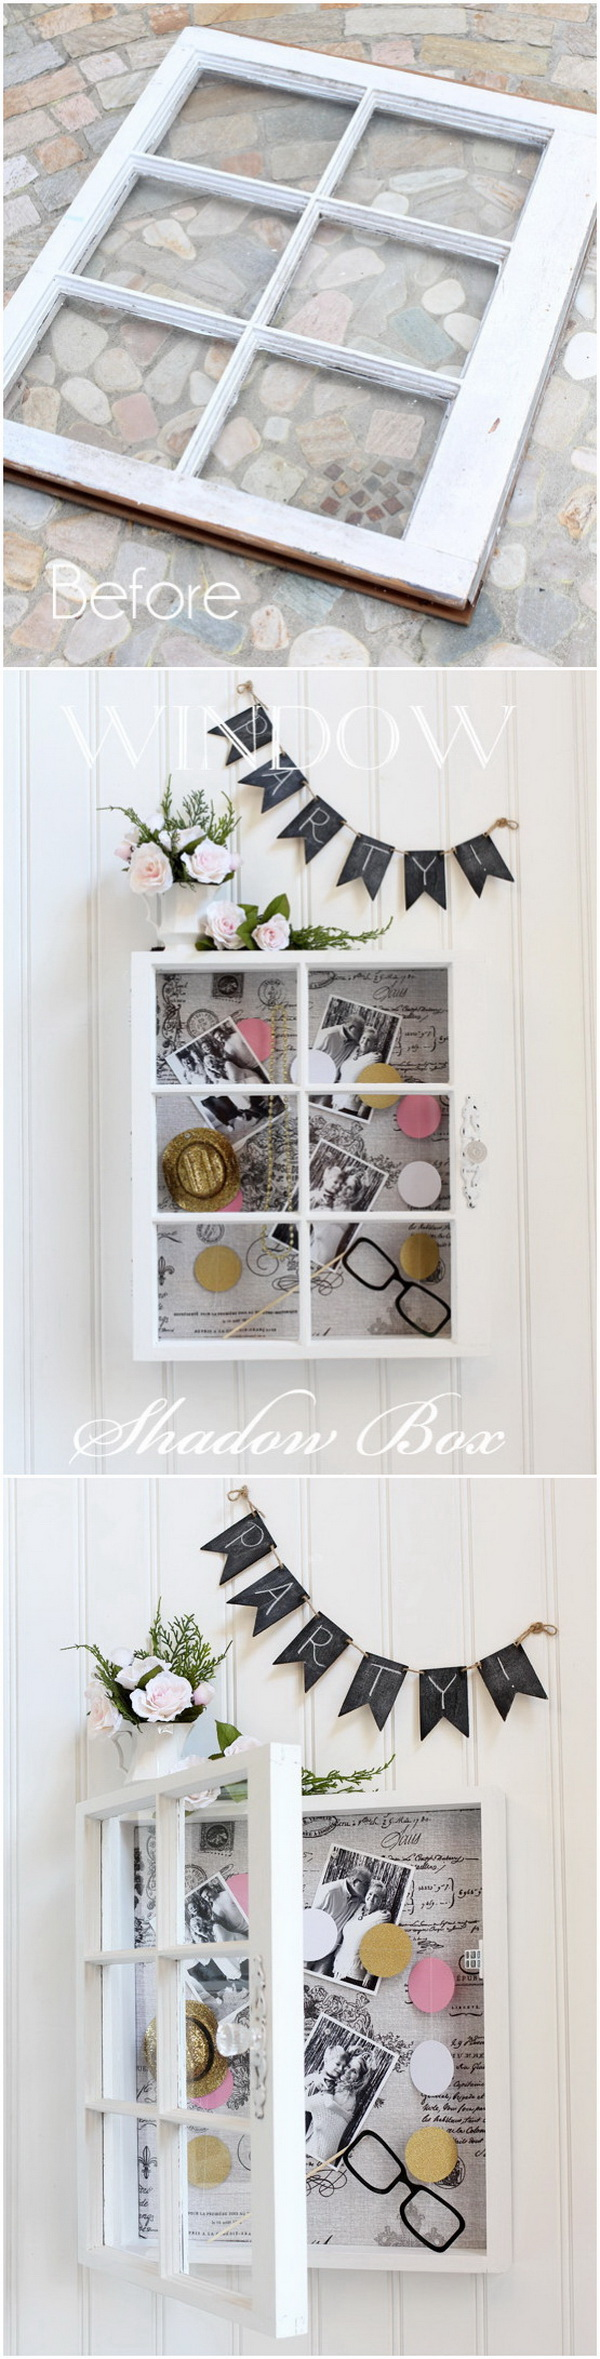 Window Shadow Storage Box. This DIY shadow box made from old windows is not only a functional storage shelf, but also be a great wall decor piece for your home!